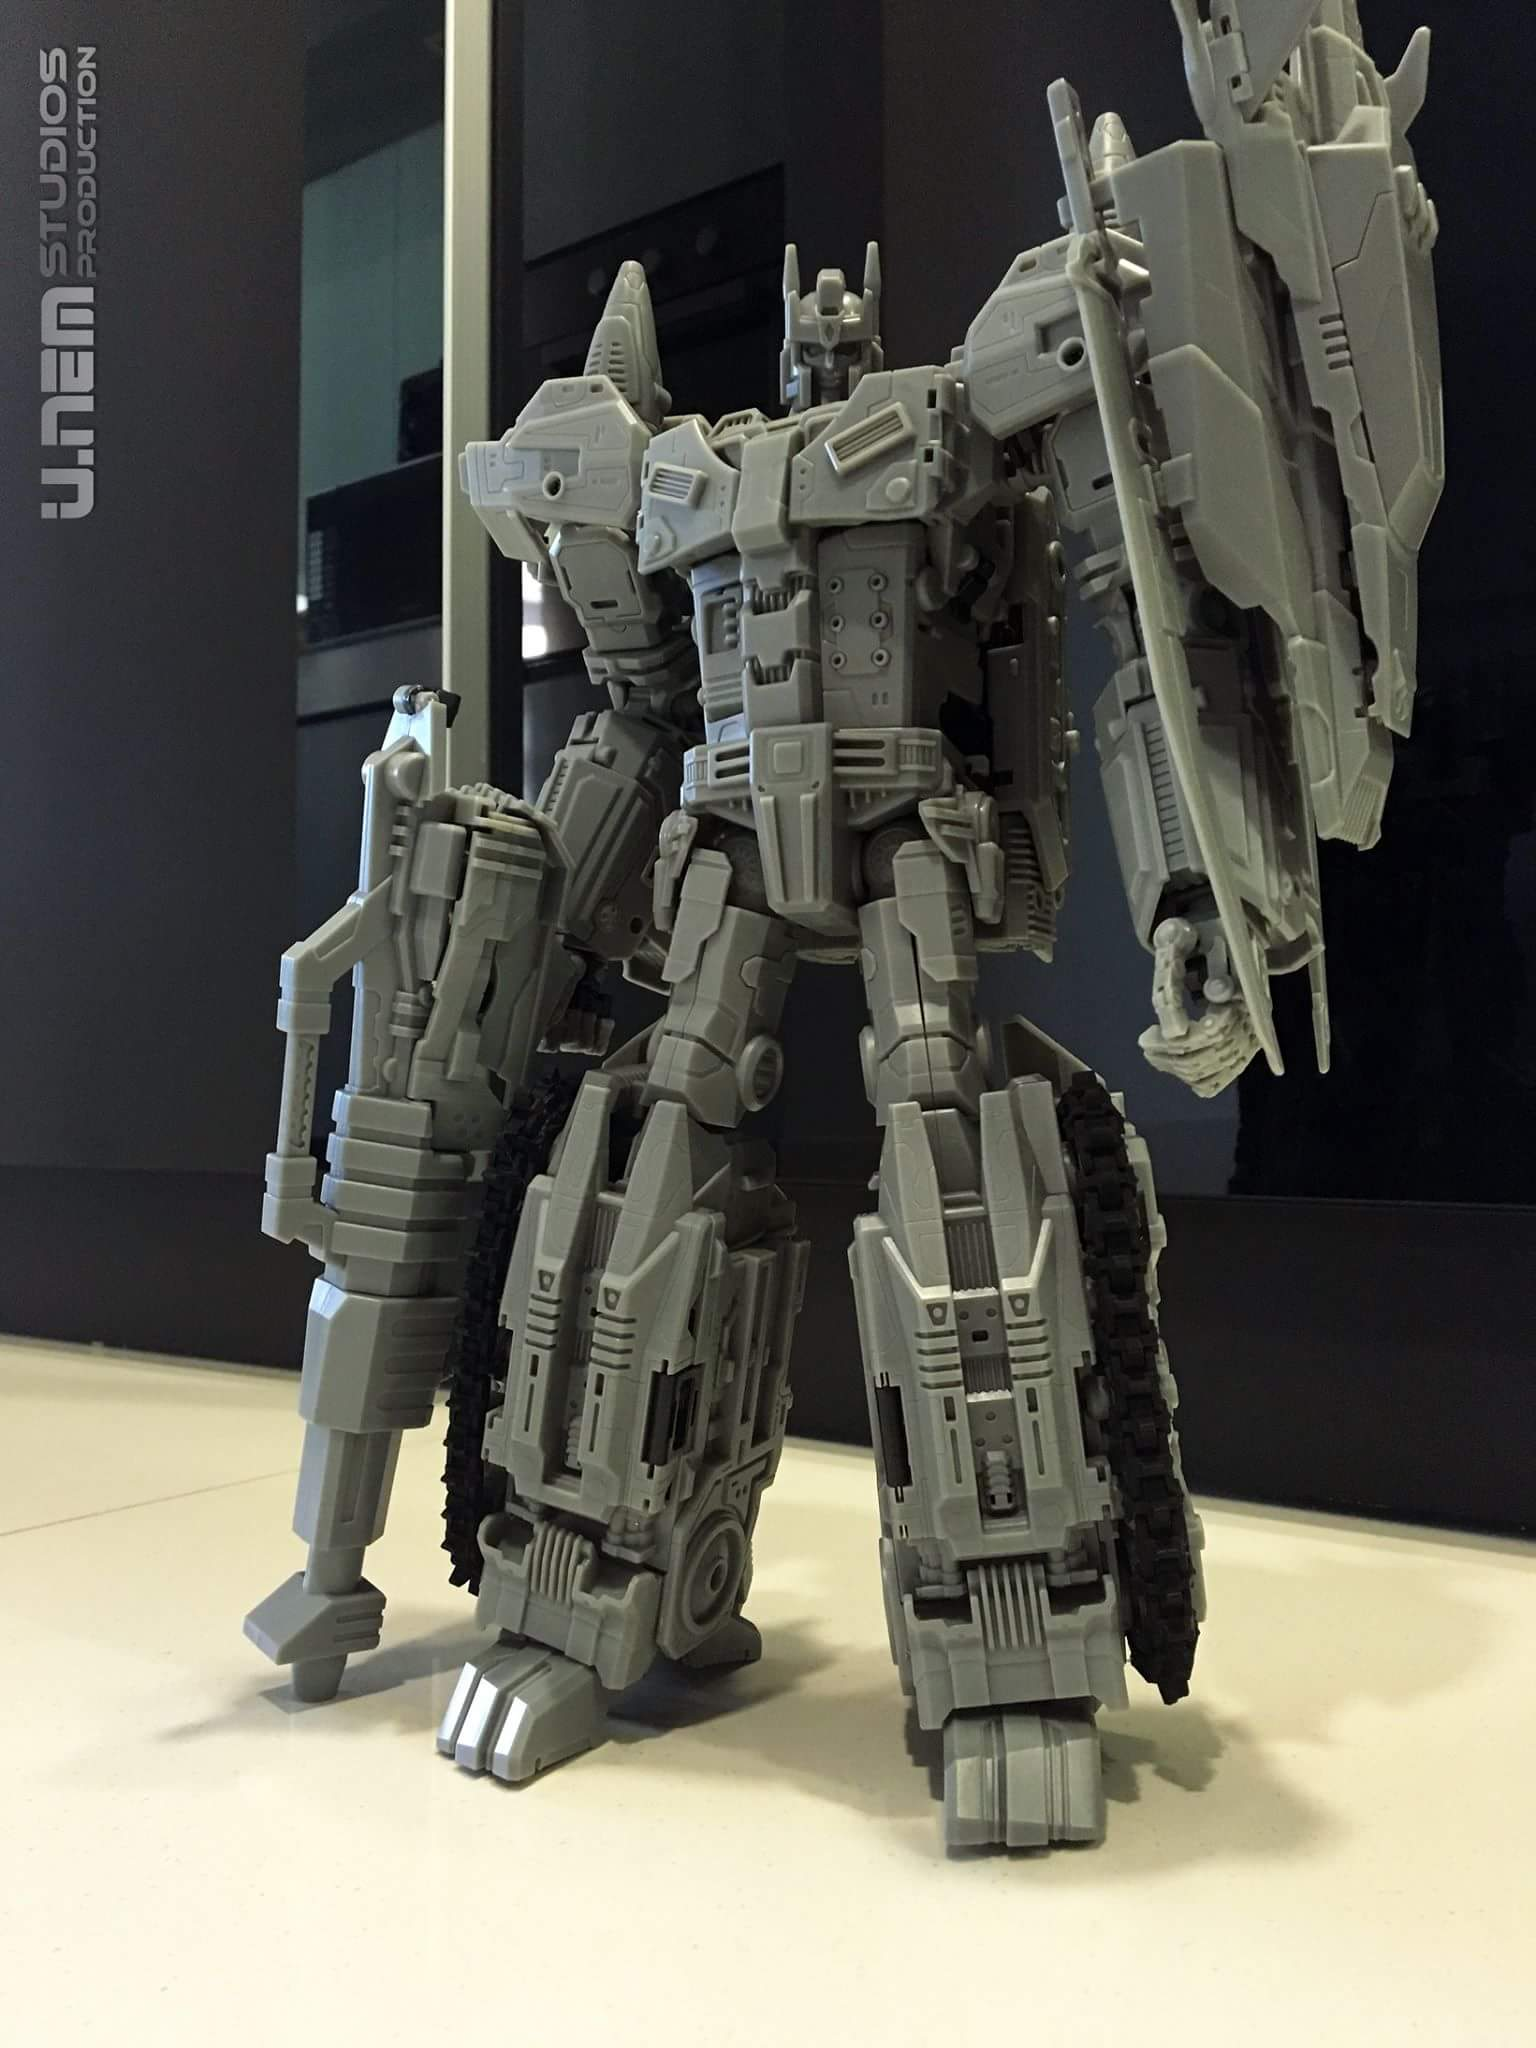 [Mastermind Creations] Produit Tiers - R-17 Carnifex - aka Overlord (TF Masterforce) Sa51QpiD